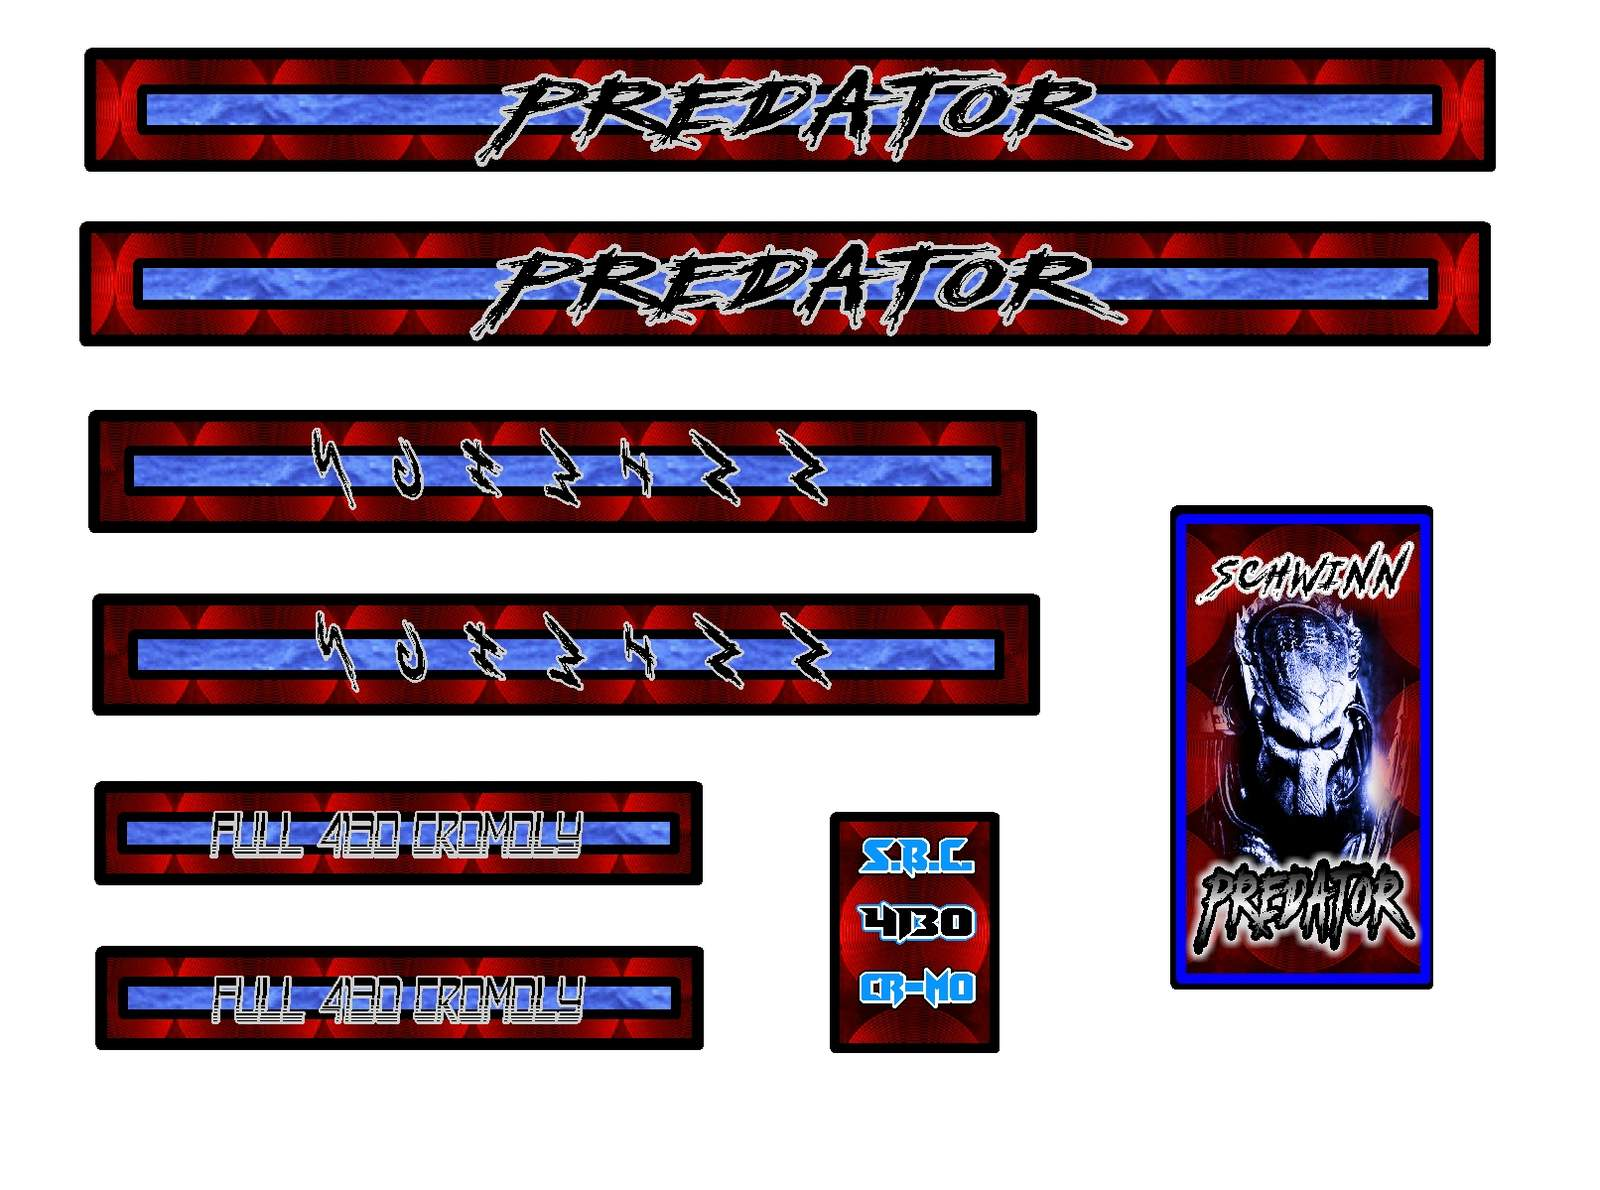 http://uploads.bmxmuseum.com/user-images/61851/pred-red-blue-decal-layout-0025b3f6492a6.jpg